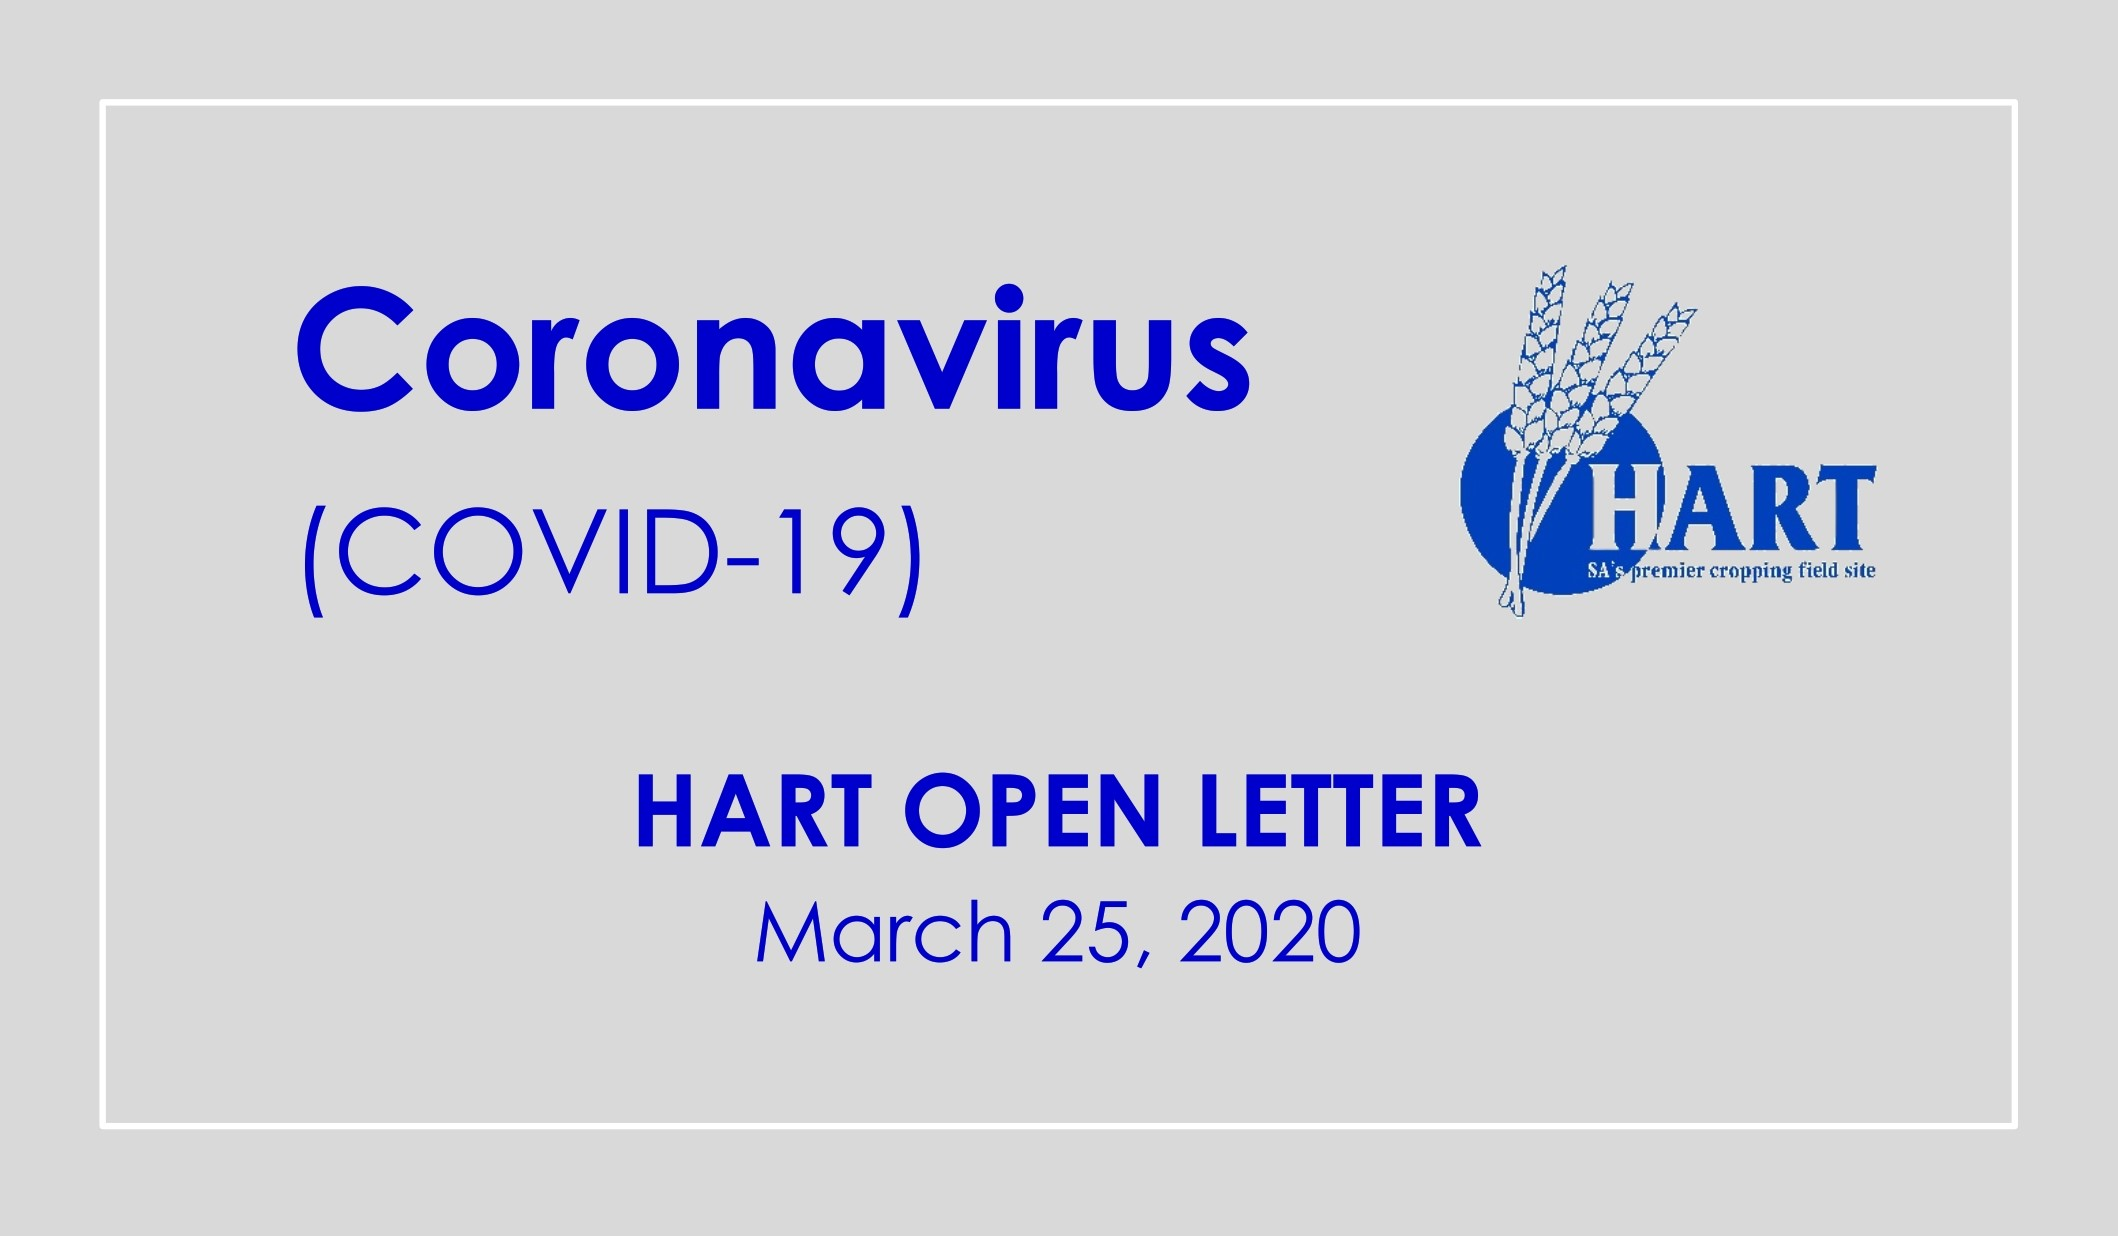 Hart COVID-19 Open Letter | March 25, 2020